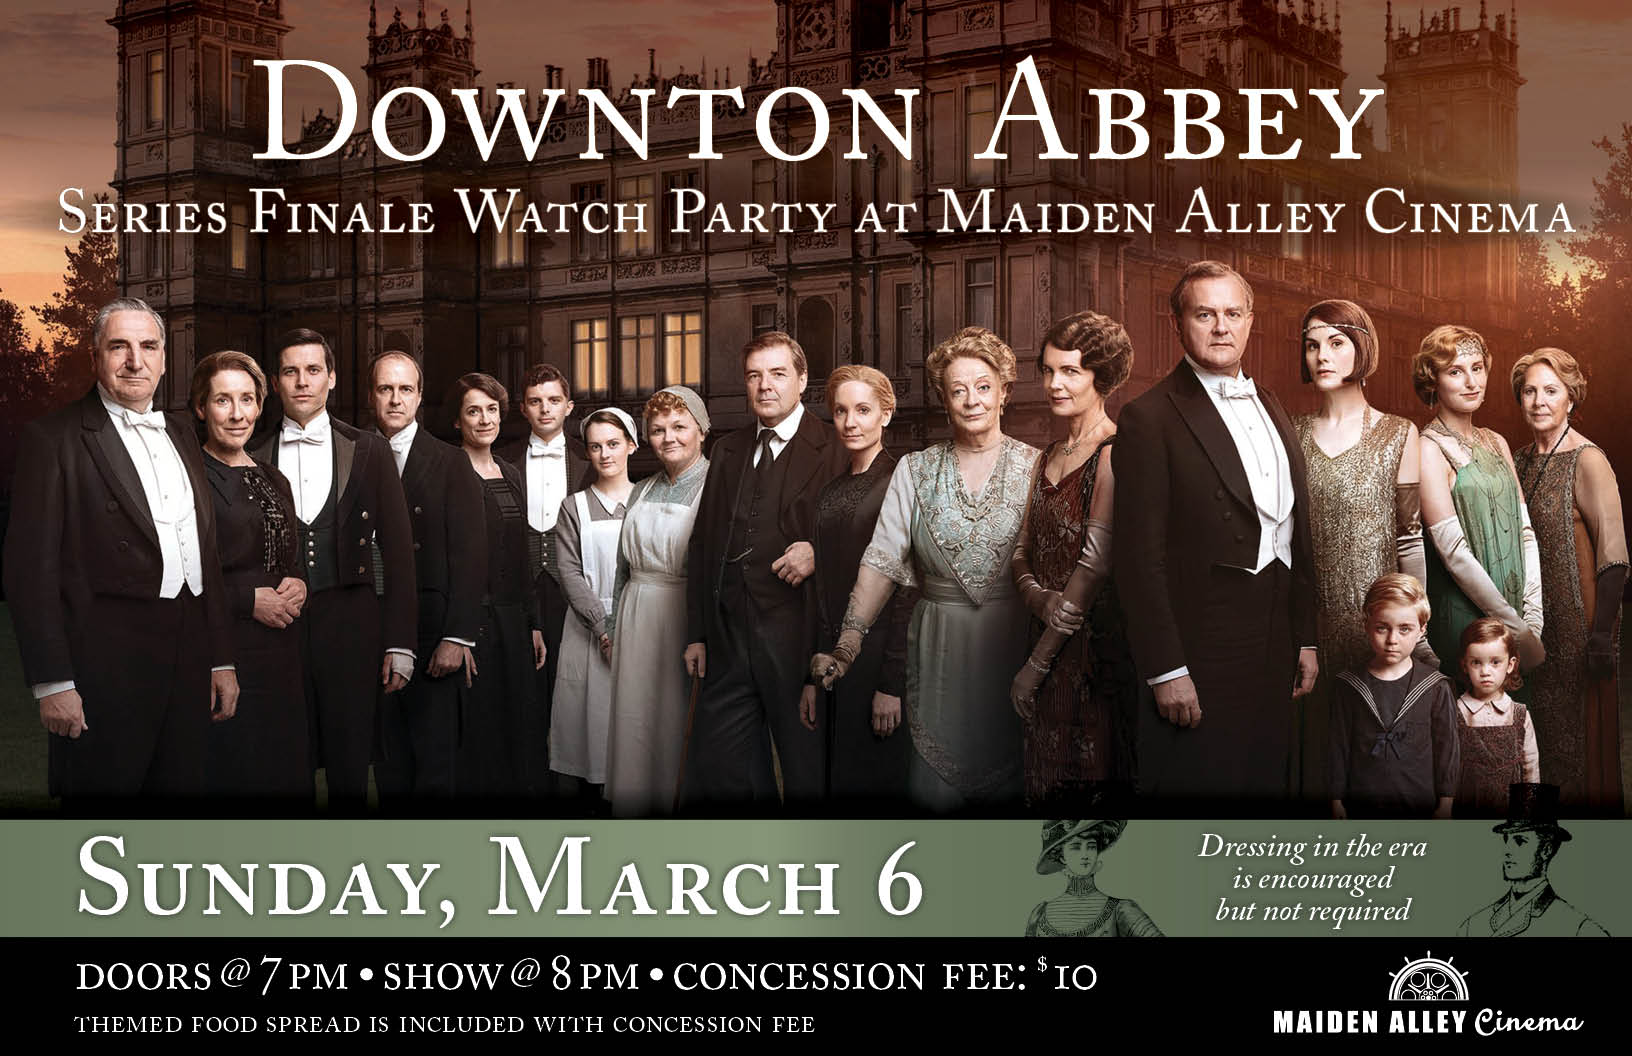 Downton abbey series finale watch party maiden alley cinema for Downton abbey tour tickets